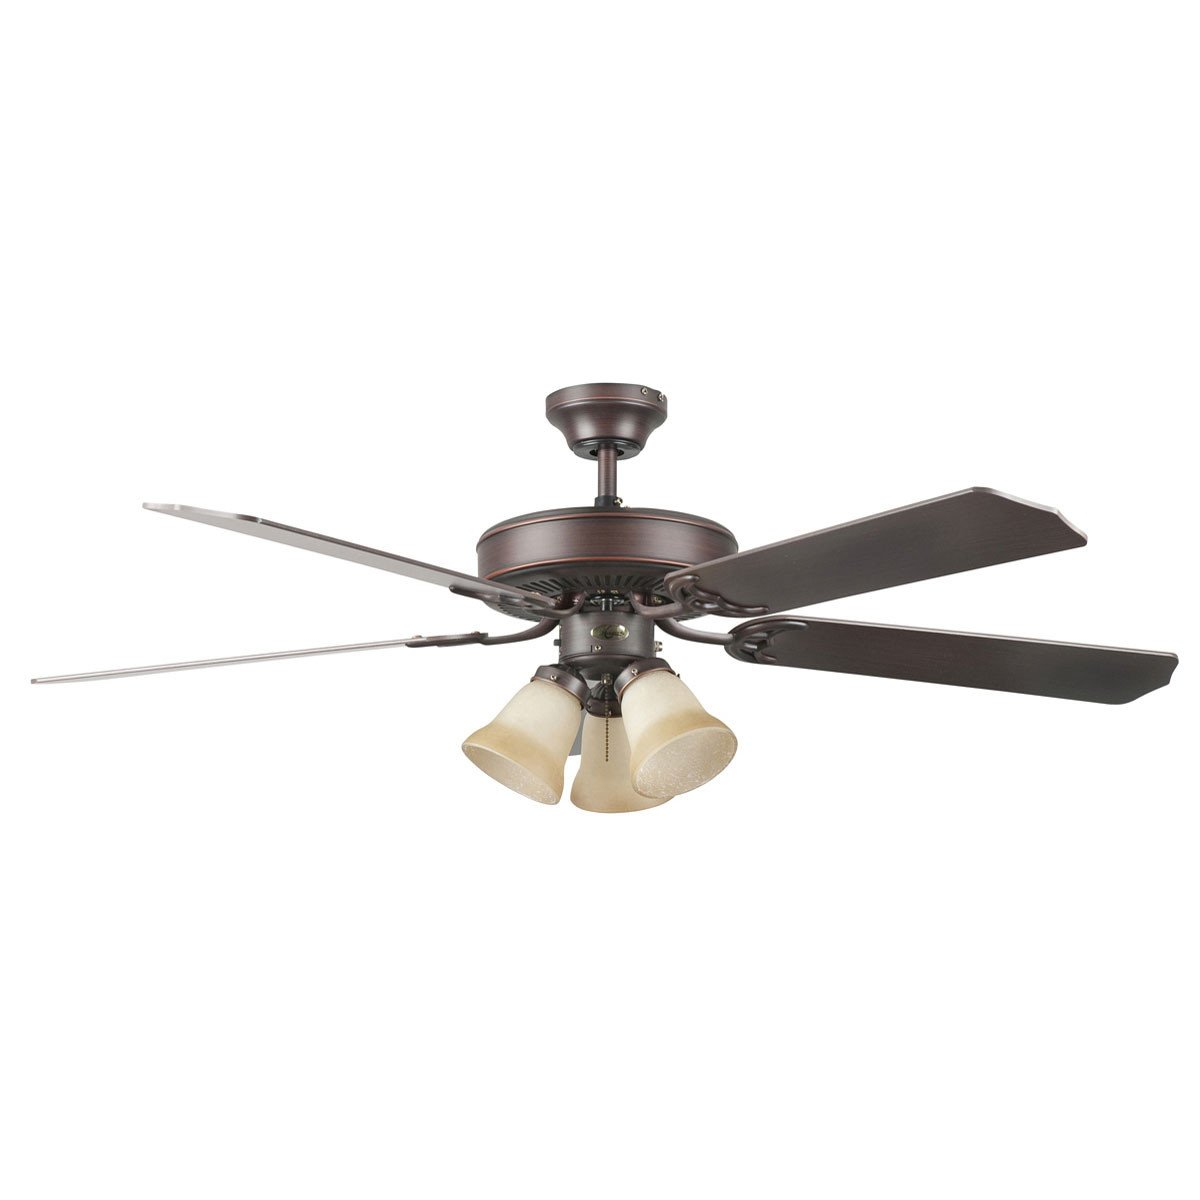 "Concord Fans 52"" Heritage Home Oil Rubbed Bronze Ceiling Fan with 3 Lights"